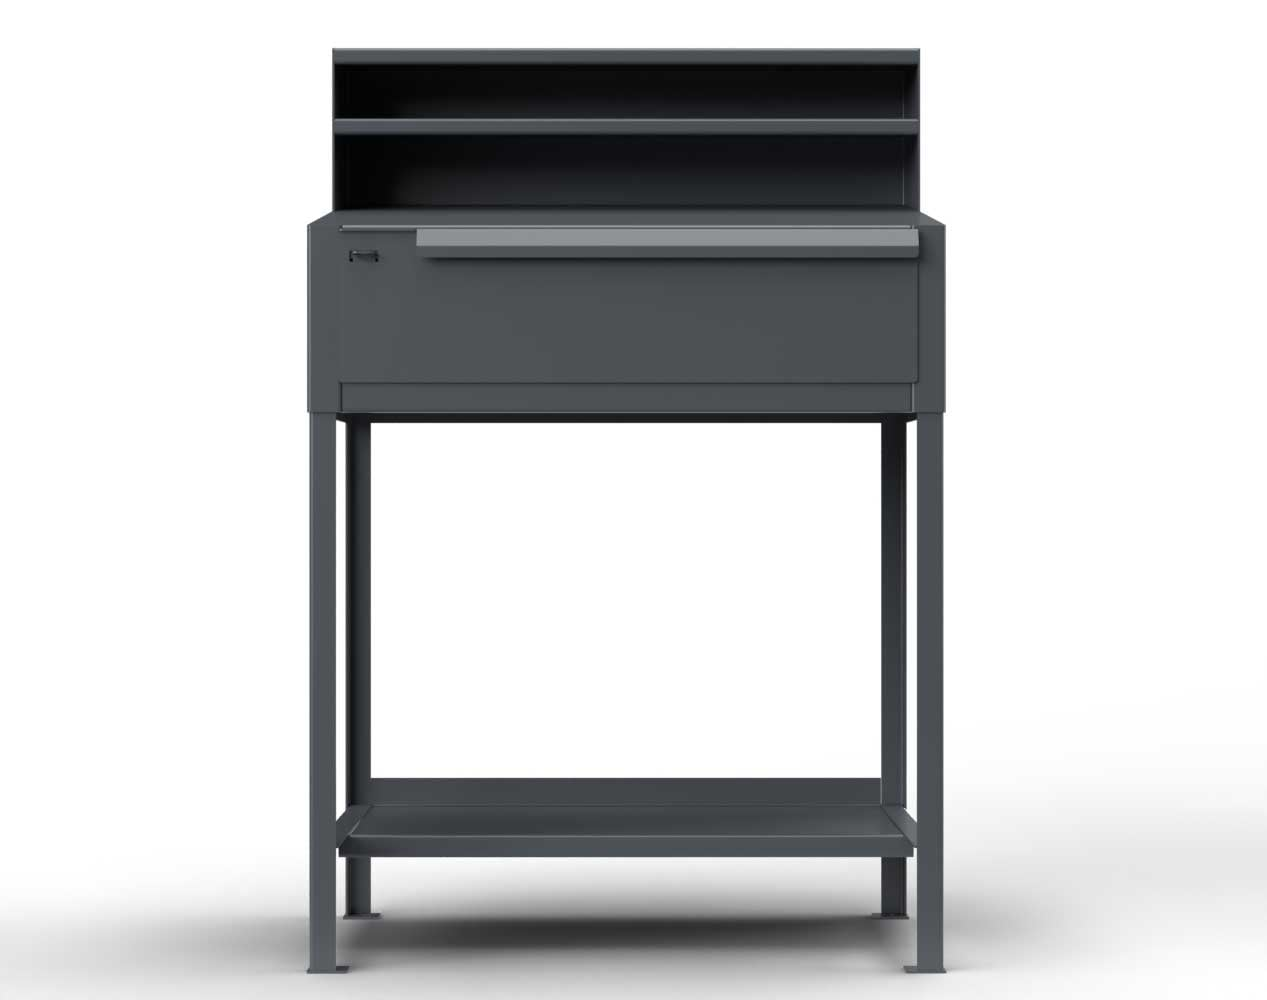 Extra Heavy Duty 12 GA Shipping and Receiving Desk with 1 Drawer, 1 Shelf, Riser Shelf – 36 In. W x 28 In. D x 54 In. H